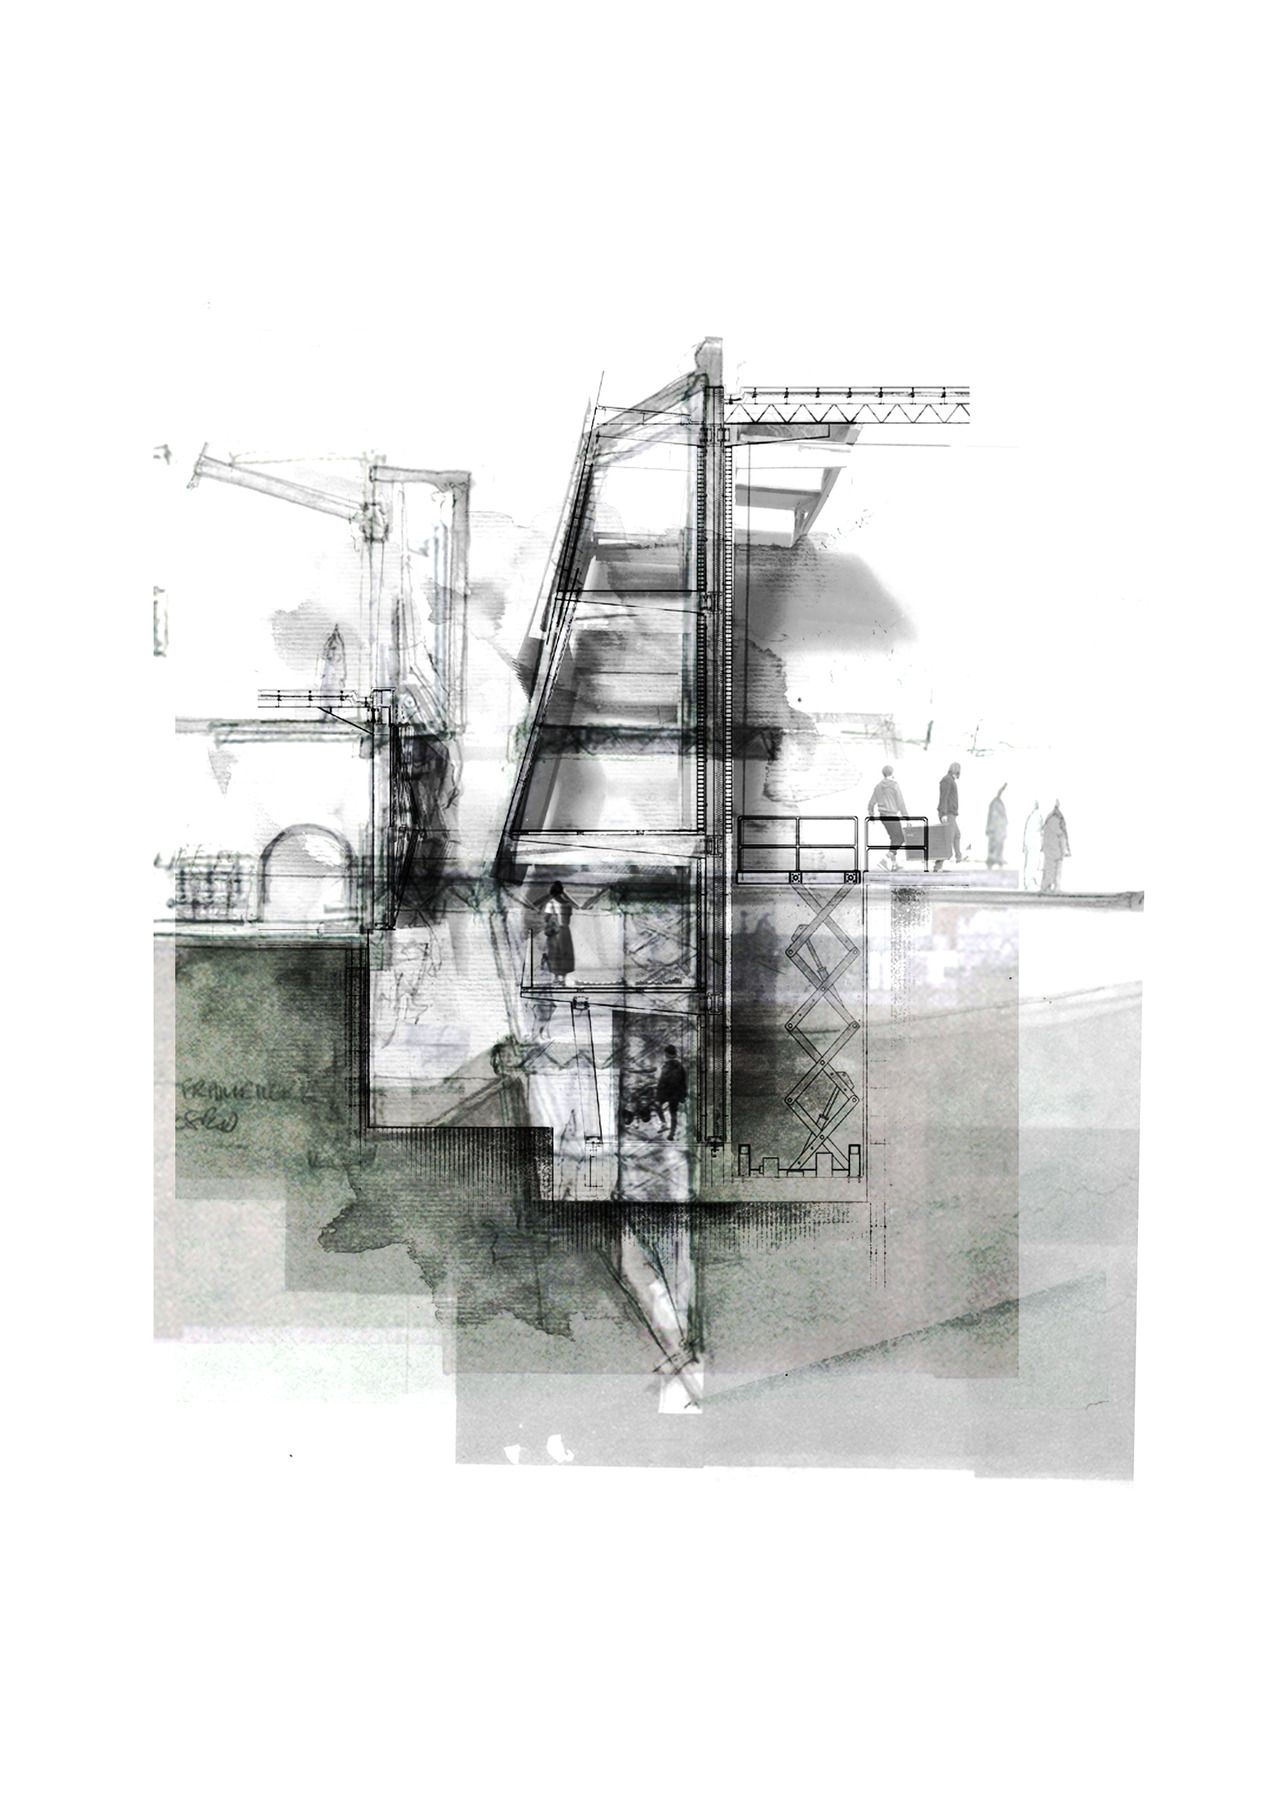 Abstract Architecture Section Drawings